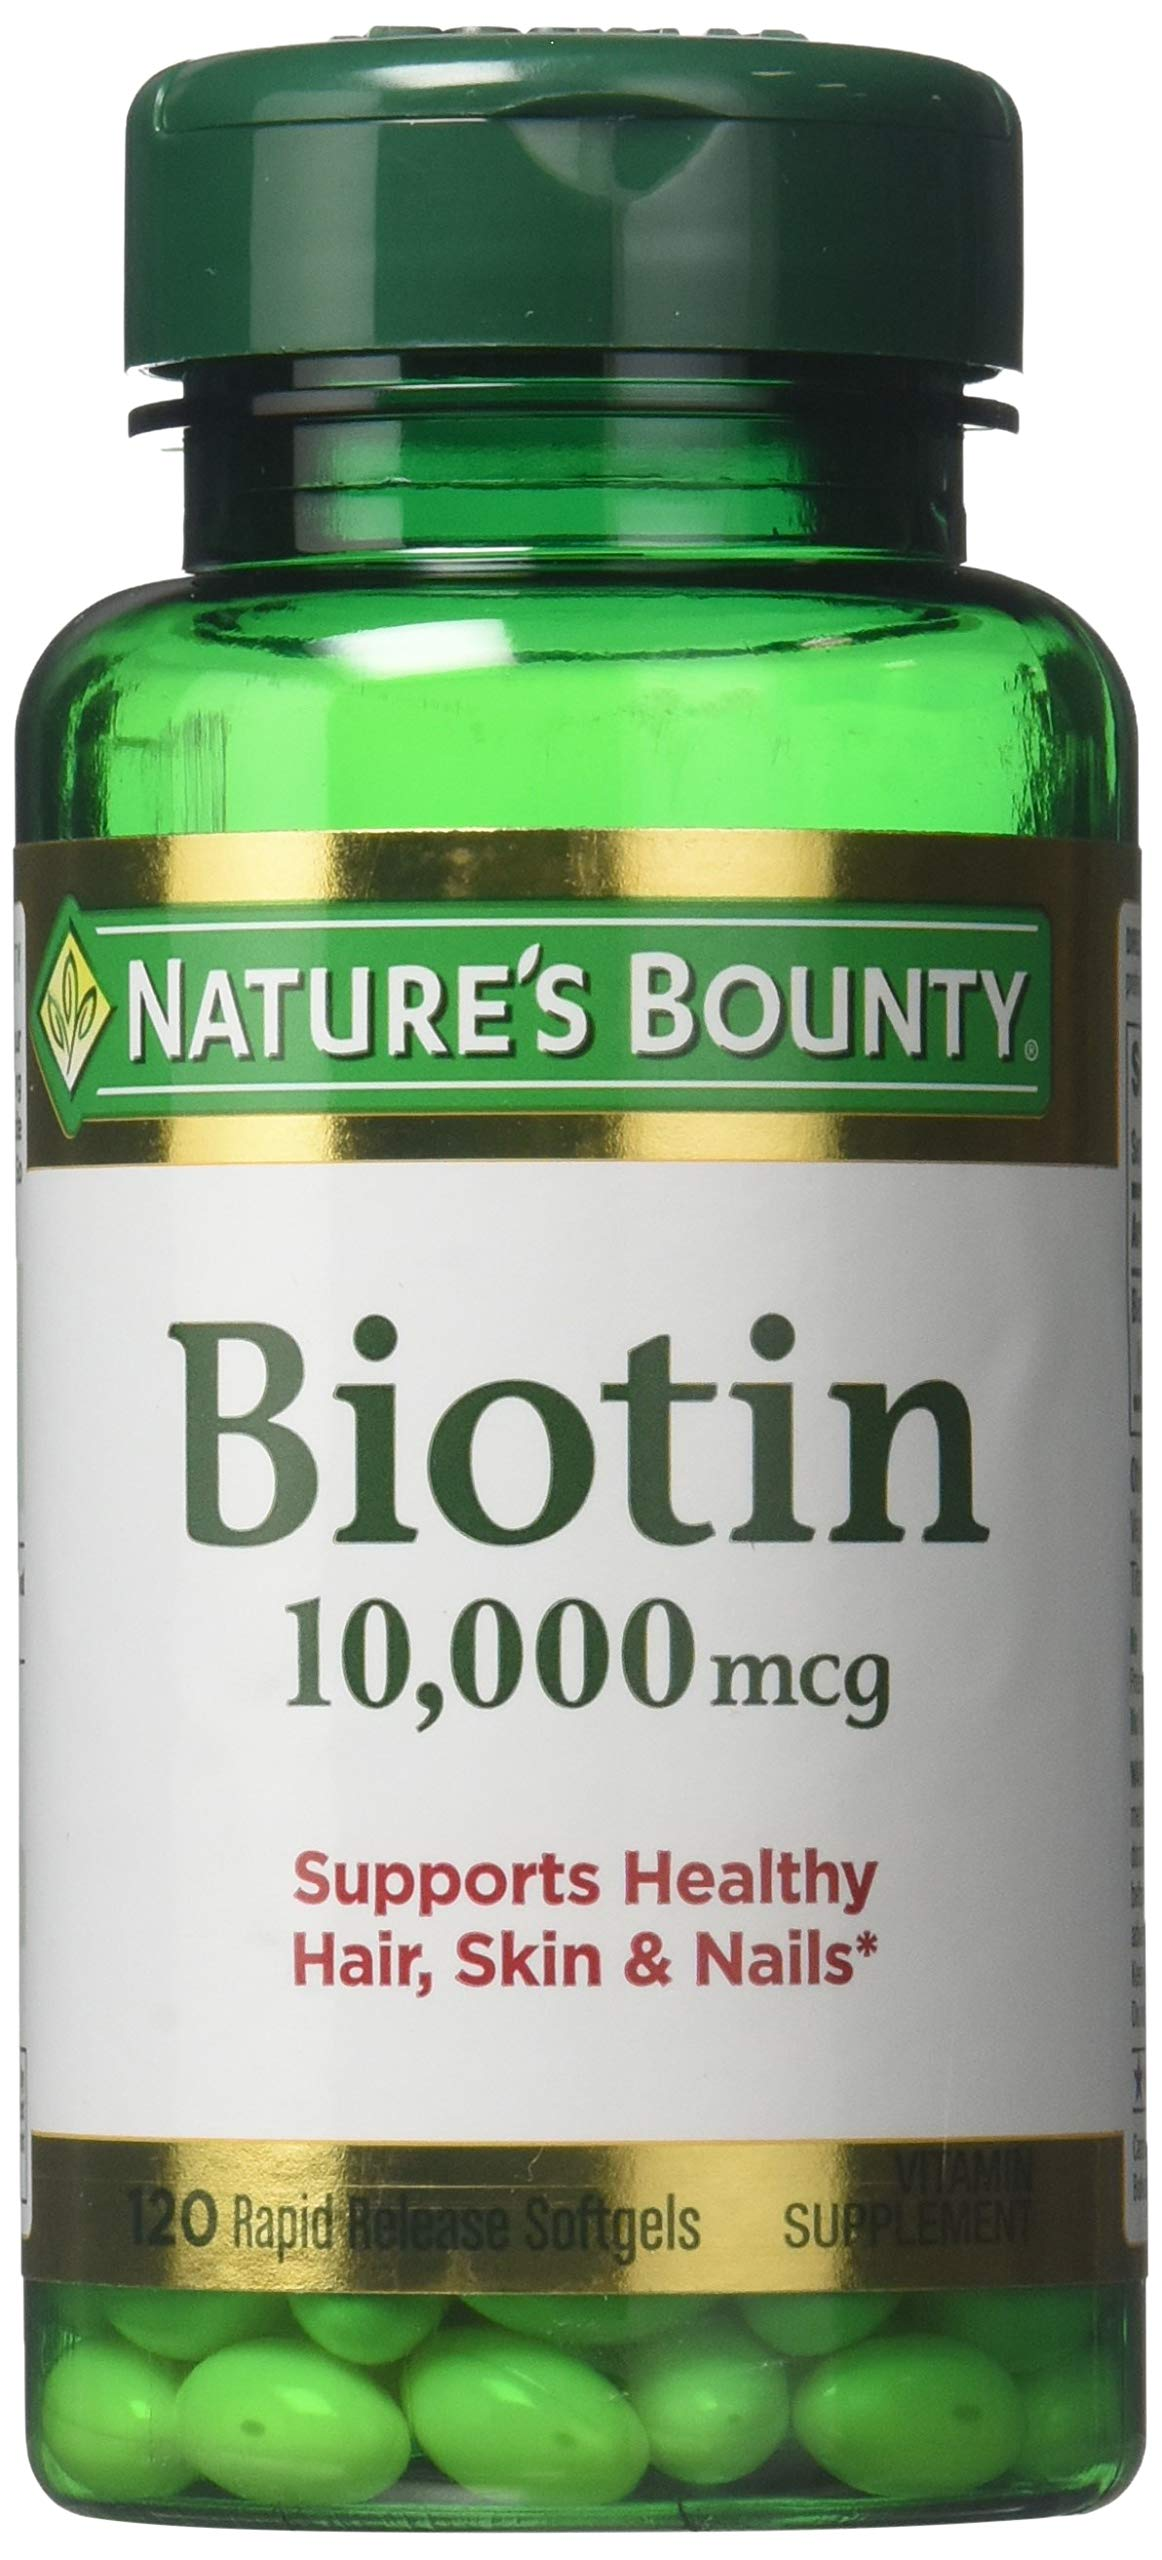 Nature's Bounty Biotin 10,000 mcg, Rapid Release Softgels 120 ea ( Pack of 2) by Nature's Bounty